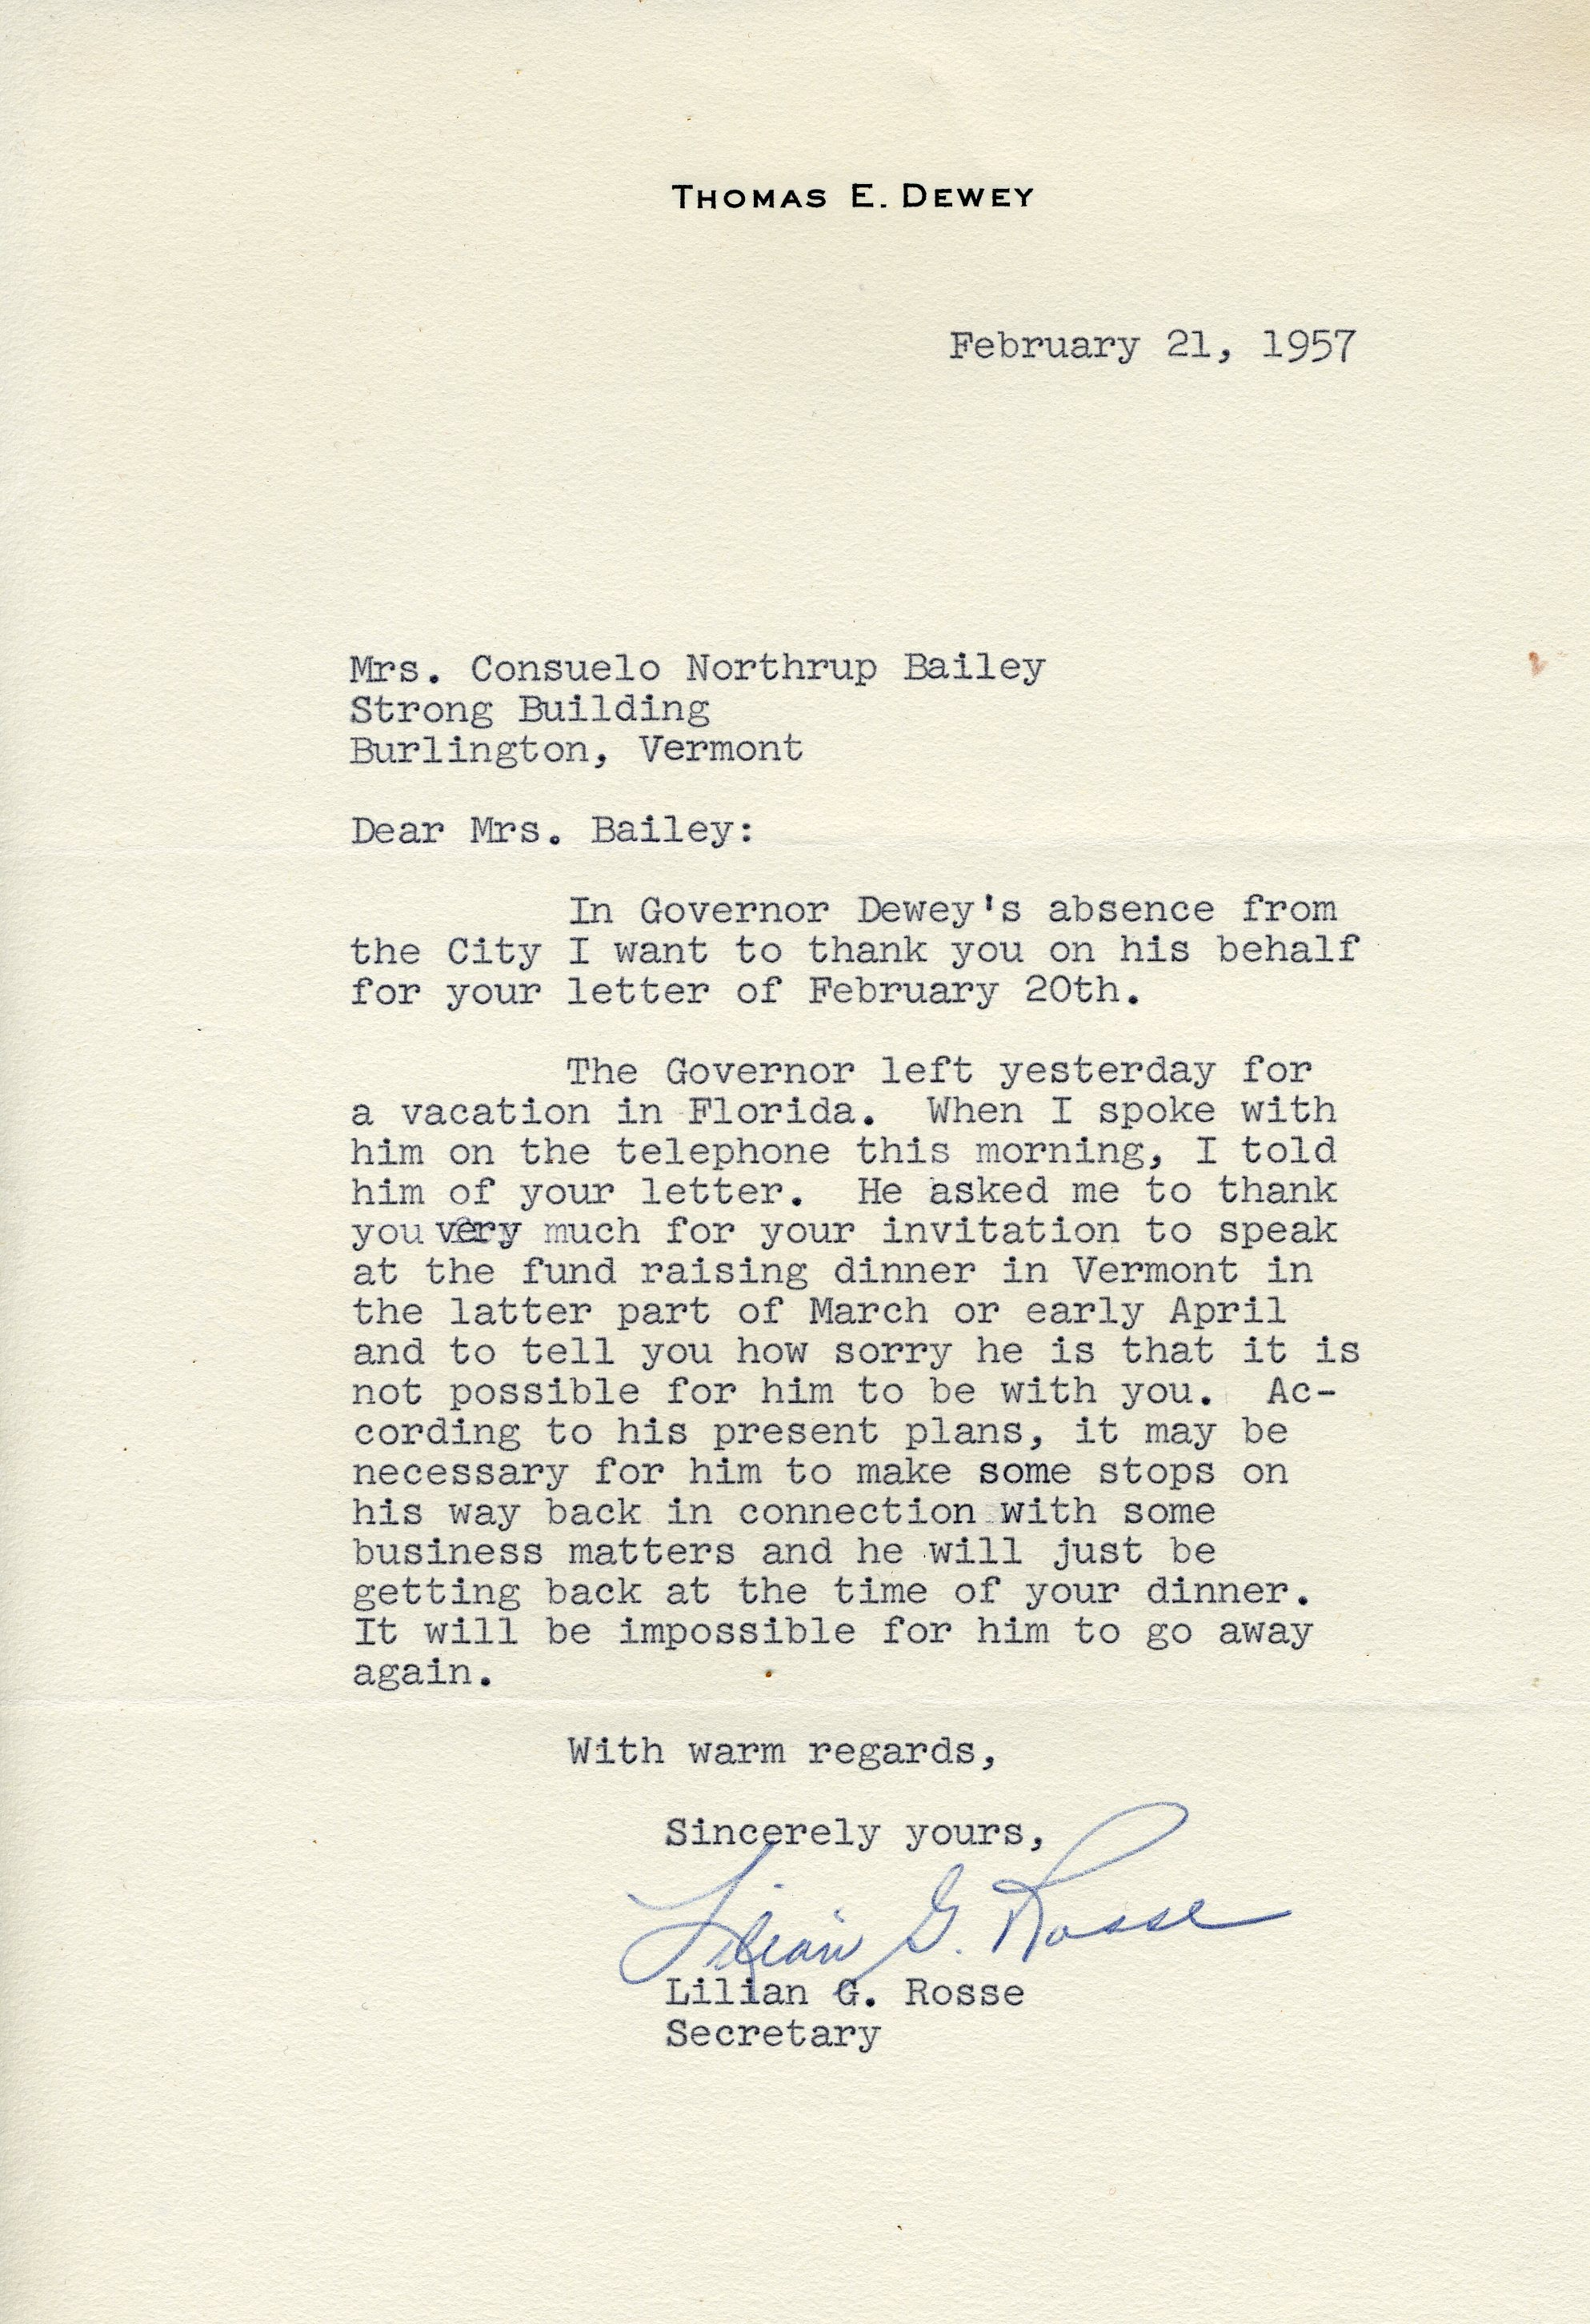 Letter from Lilian G. Rose to Consuelo Northrop Bailey, 1957 February 21